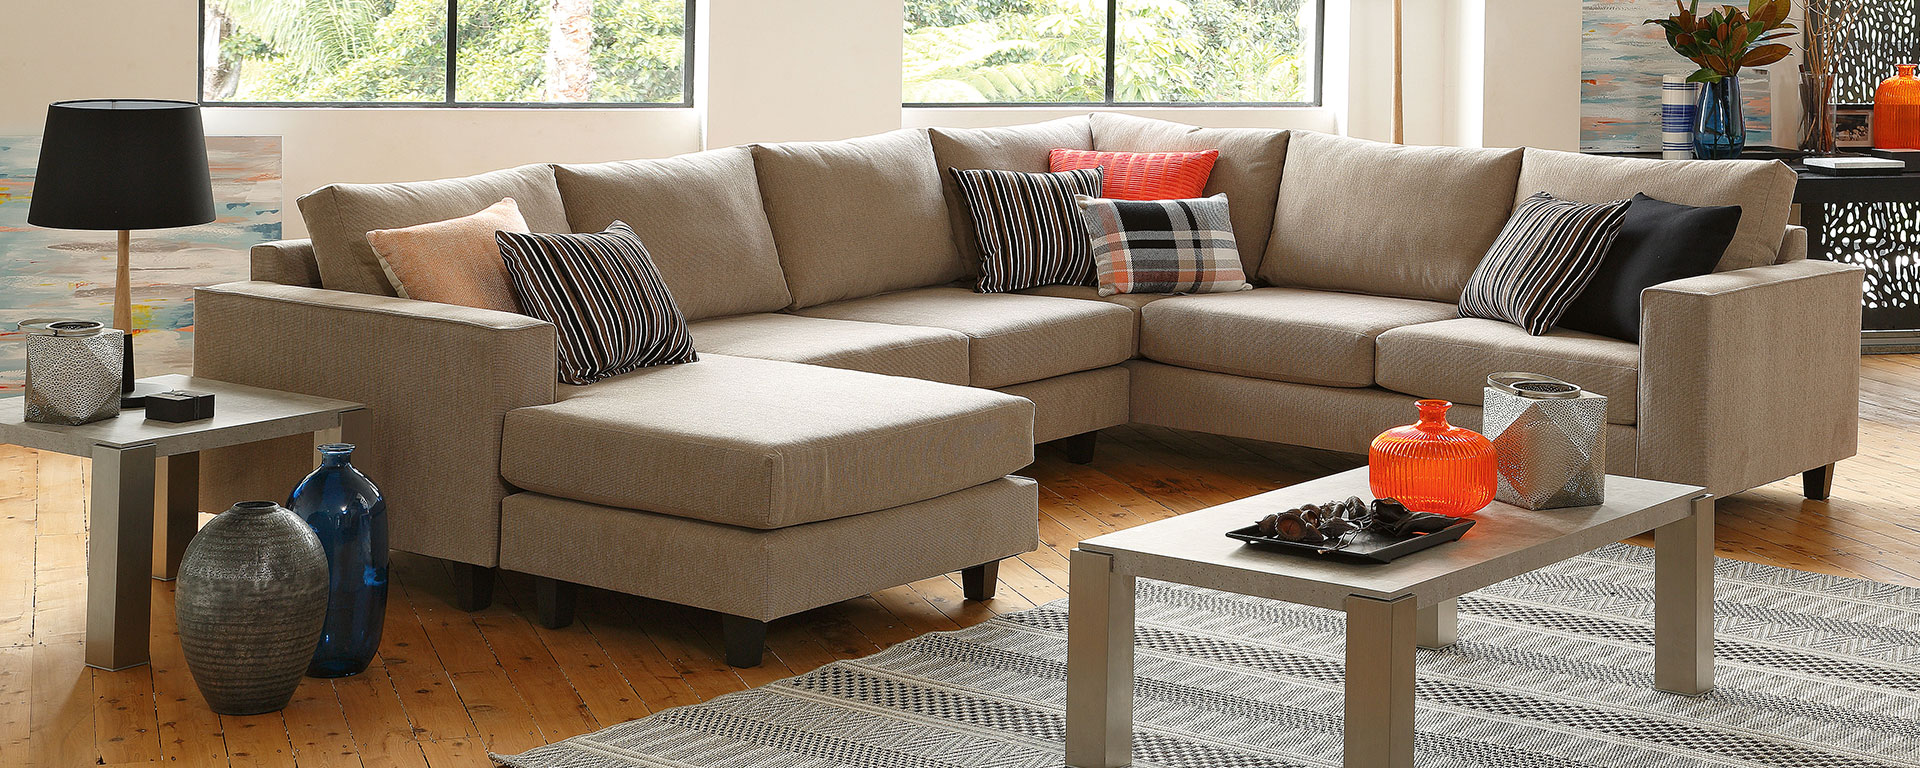 casual elegant living room furniture alessandro leather sectional collection casually modulars to transform your harvey